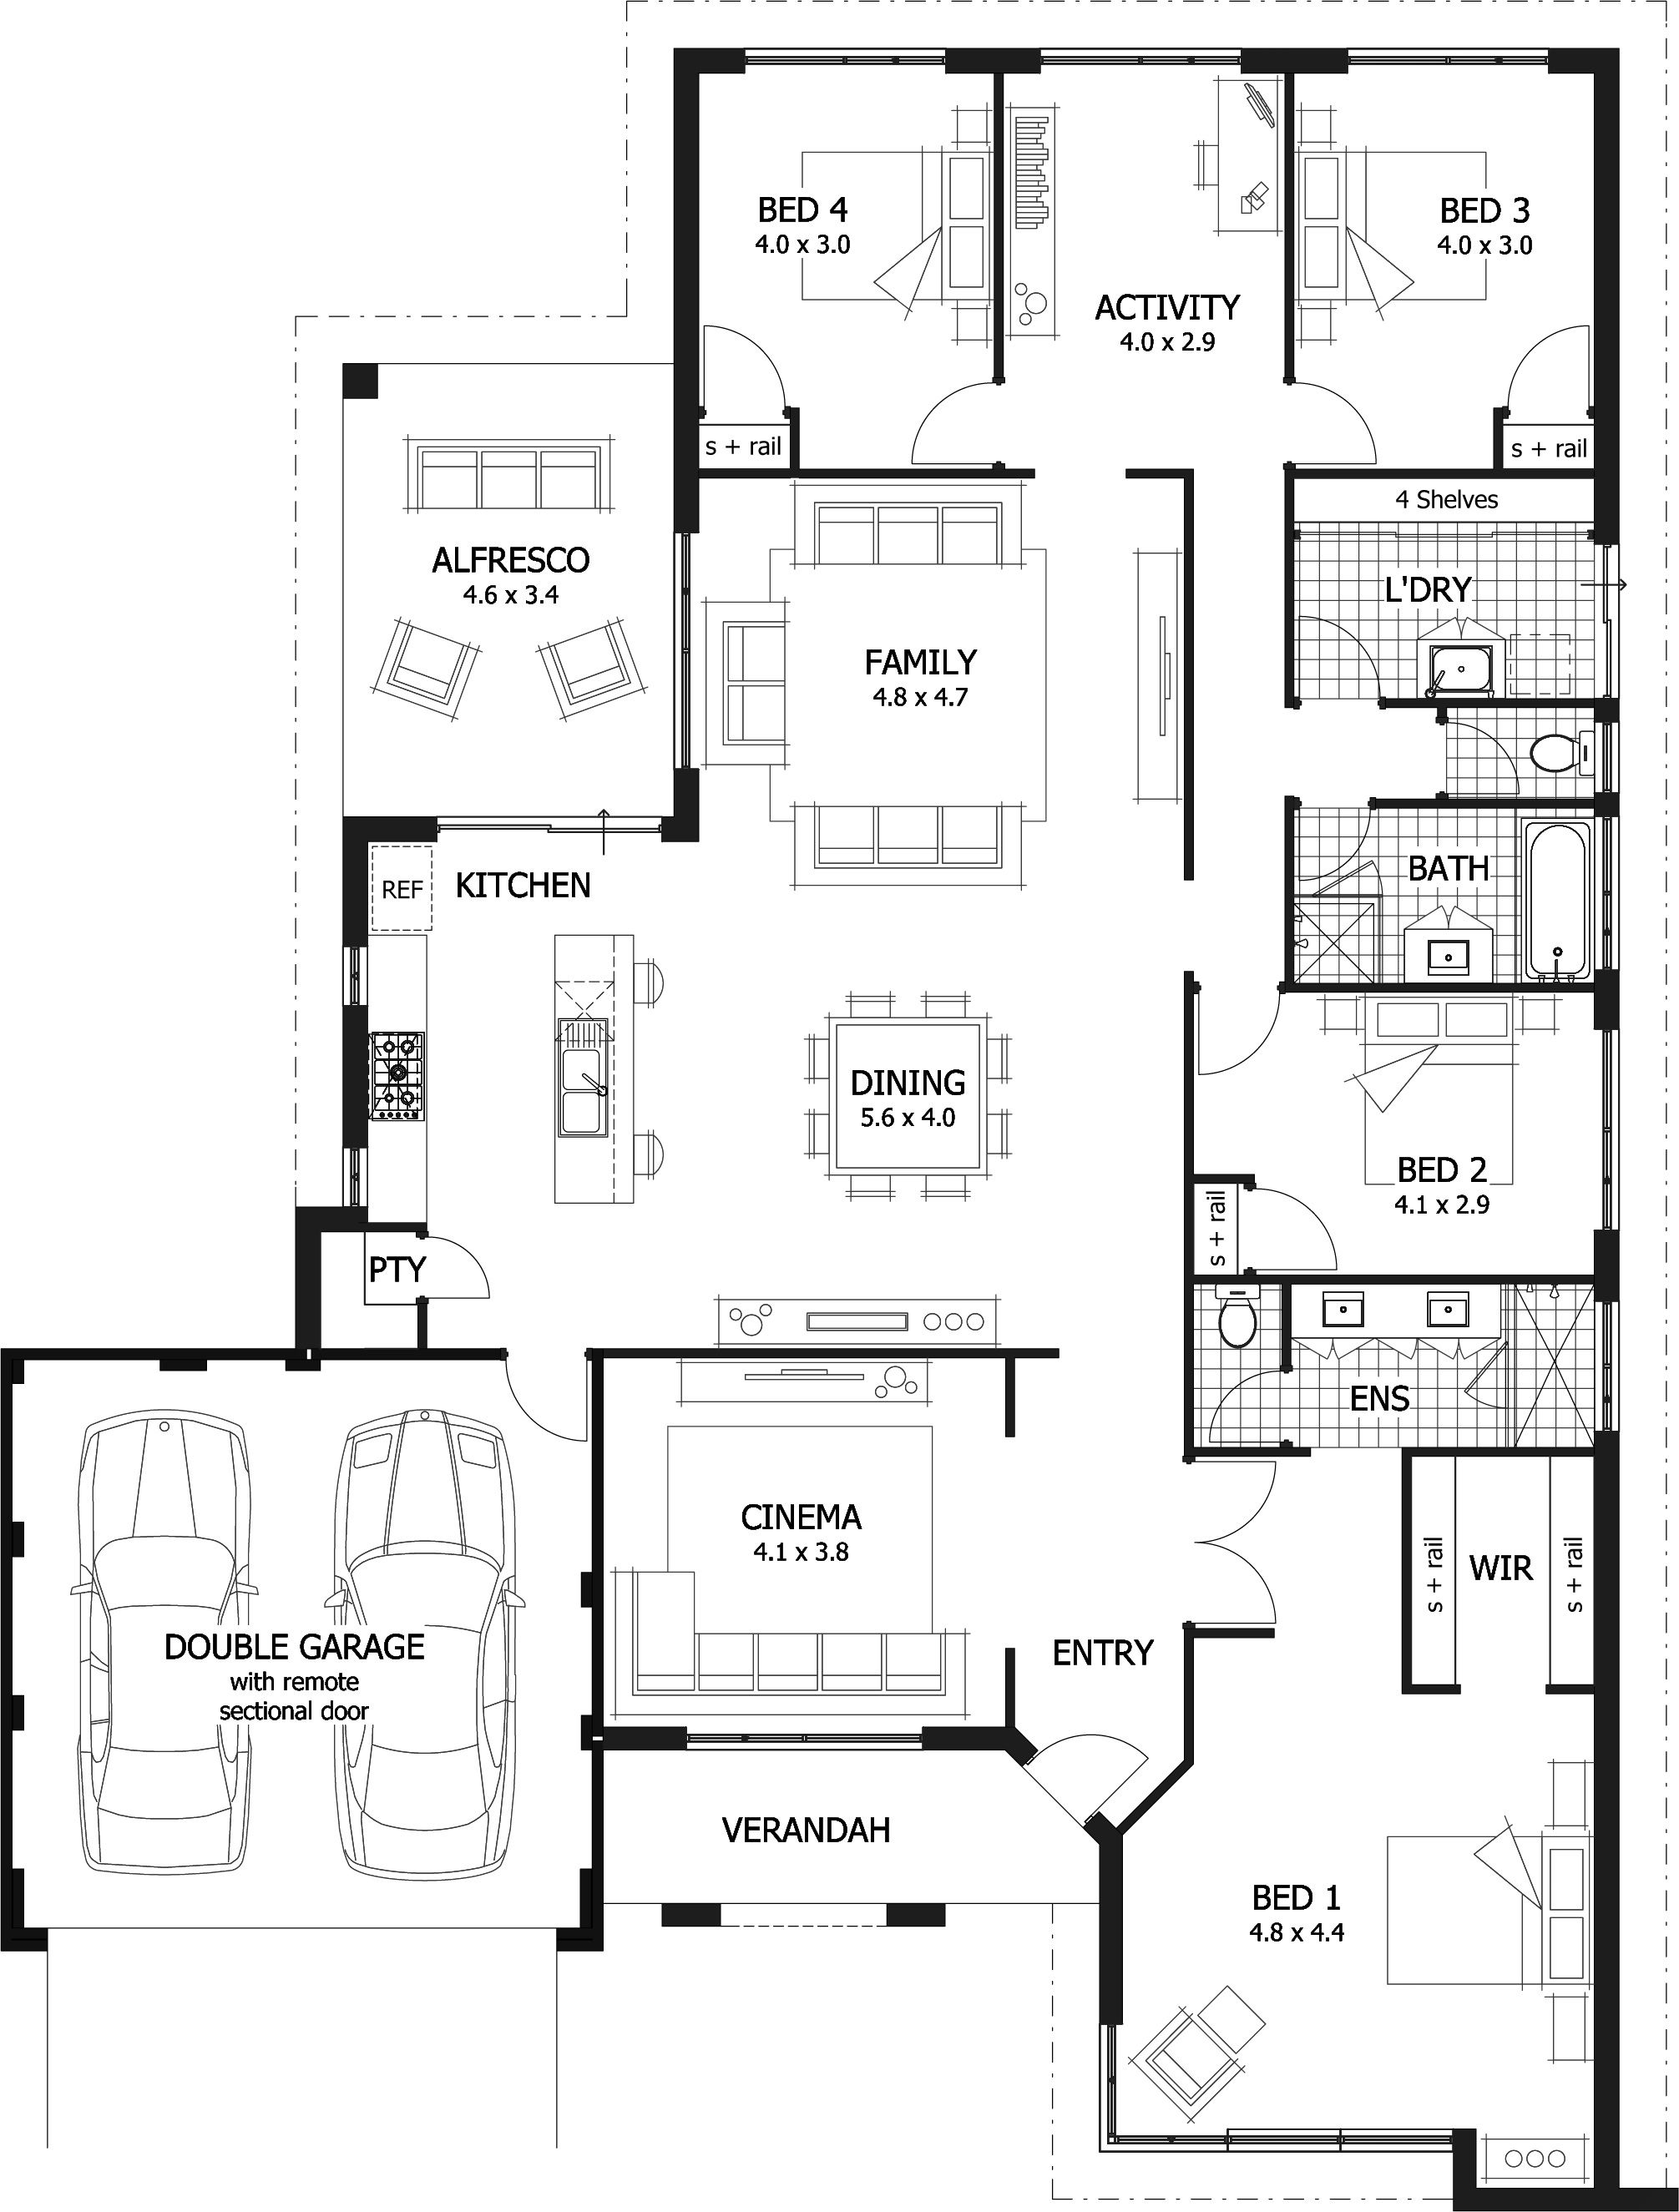 28 Best Photo Of 18 Wide Mobile Home Floor Plans Ideas in addition 18 Foot Wide Mobile Home Floor Plans in addition 1 Bedroom Bath Mobile Home Floor Plans further 16x40 Cabin Floor Plans besides Index. on single wide mobile home floor plans 14 x 40